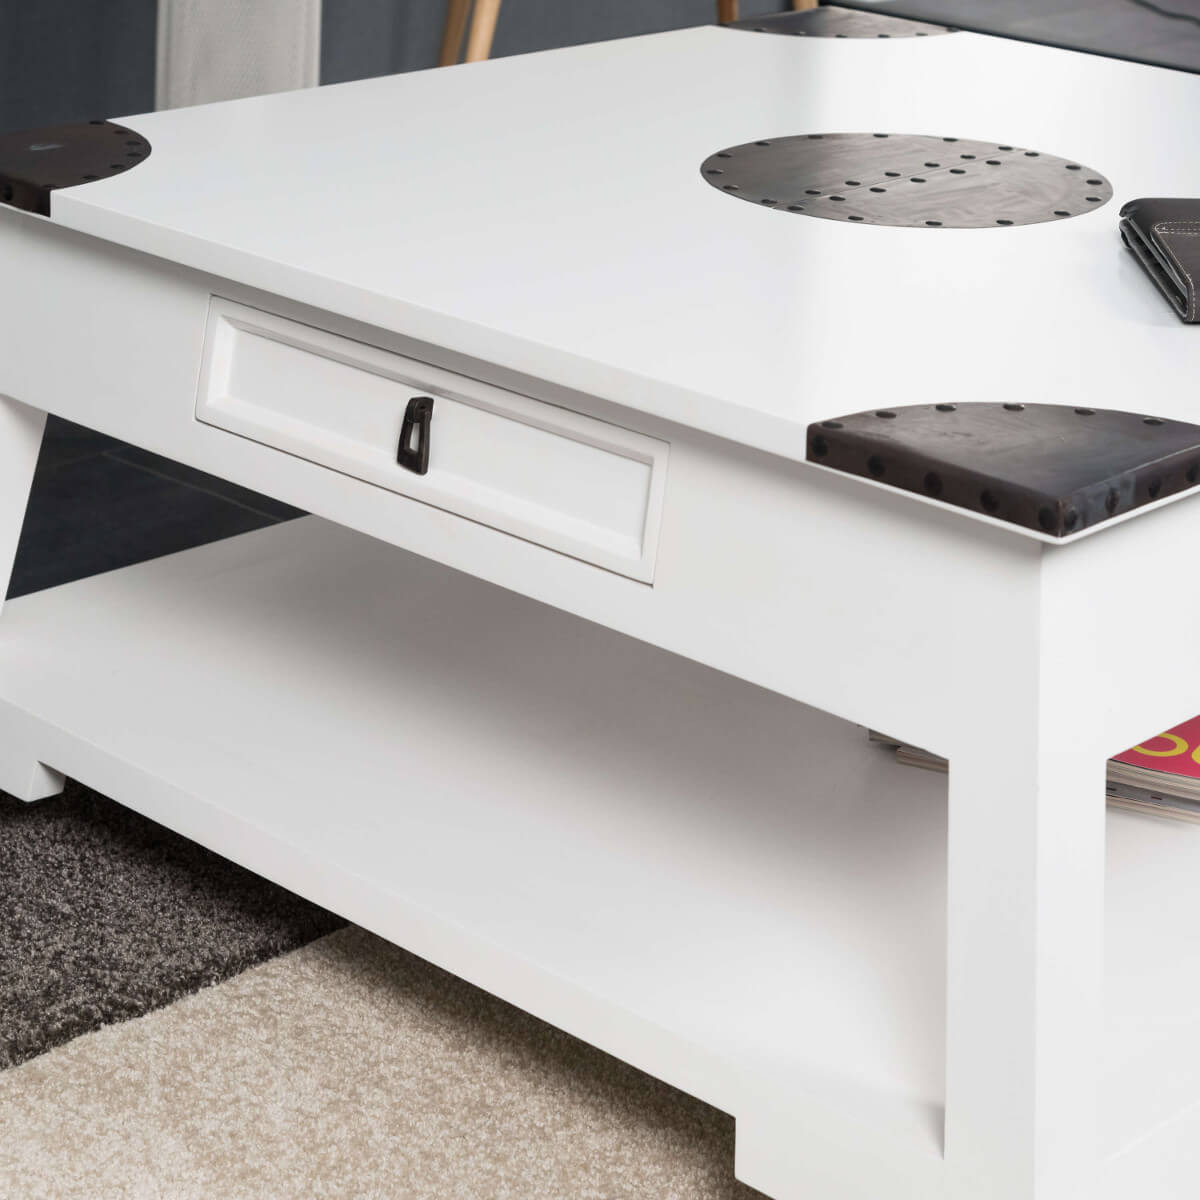 Table basse acajou bois massif carr e blanche thao 85 cm - Table basse moderne divine collection ...